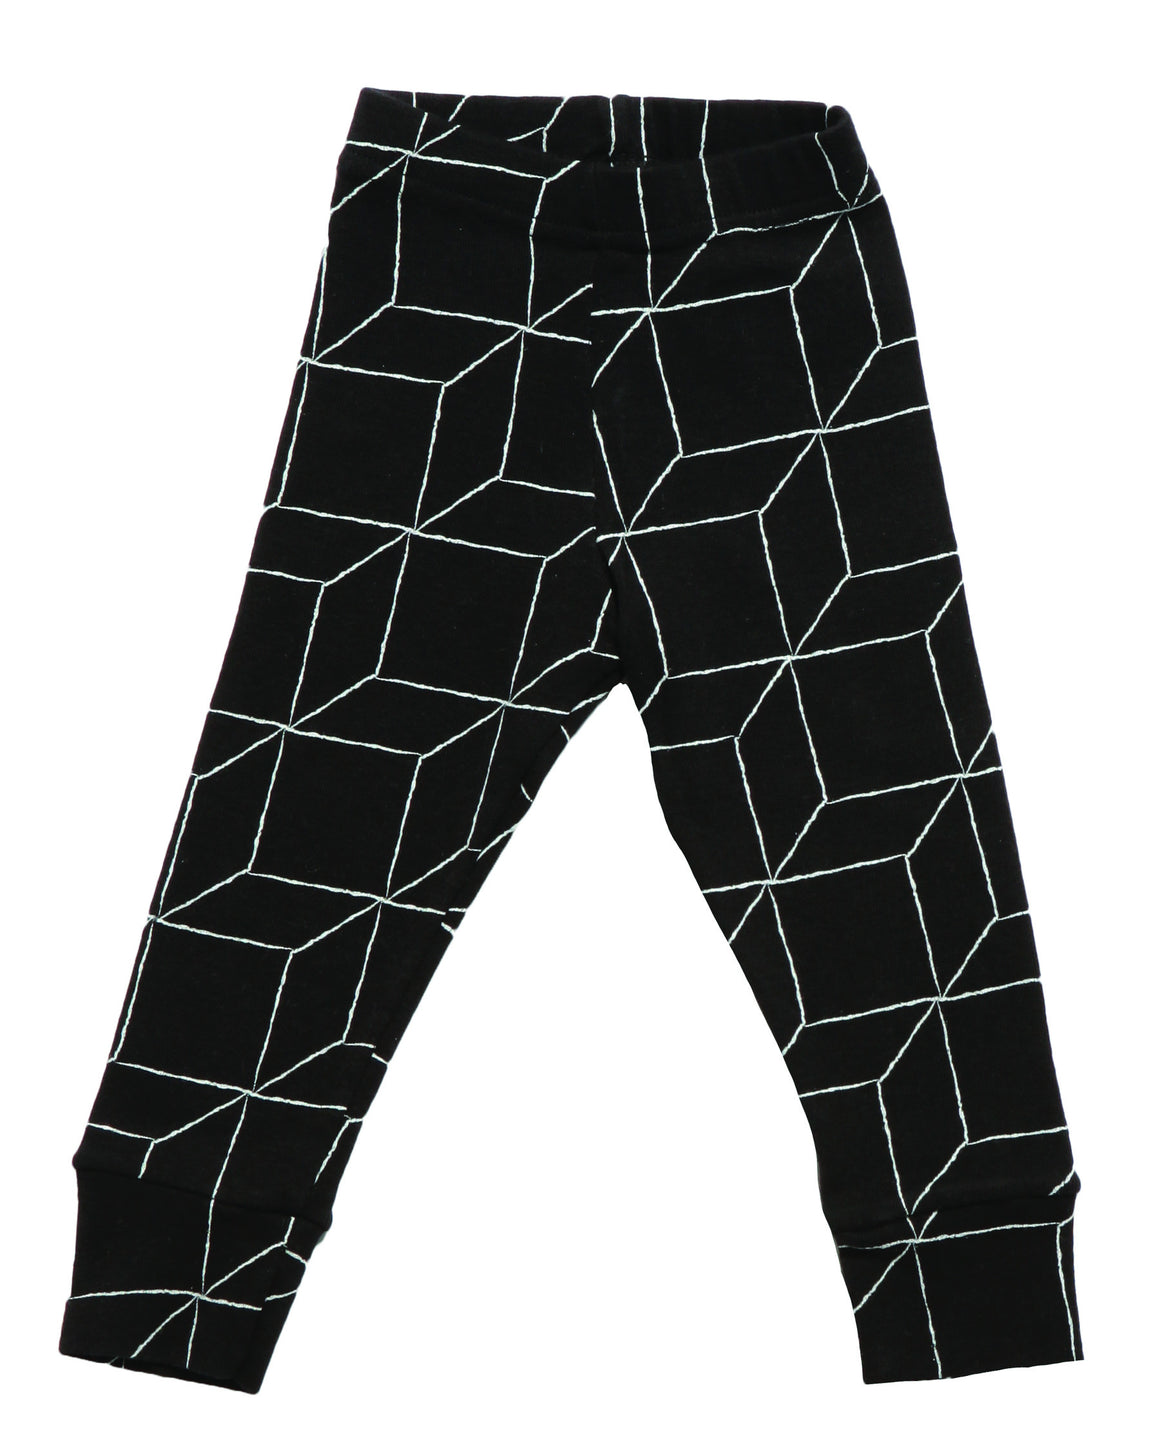 Nununu Black Grid Leggings